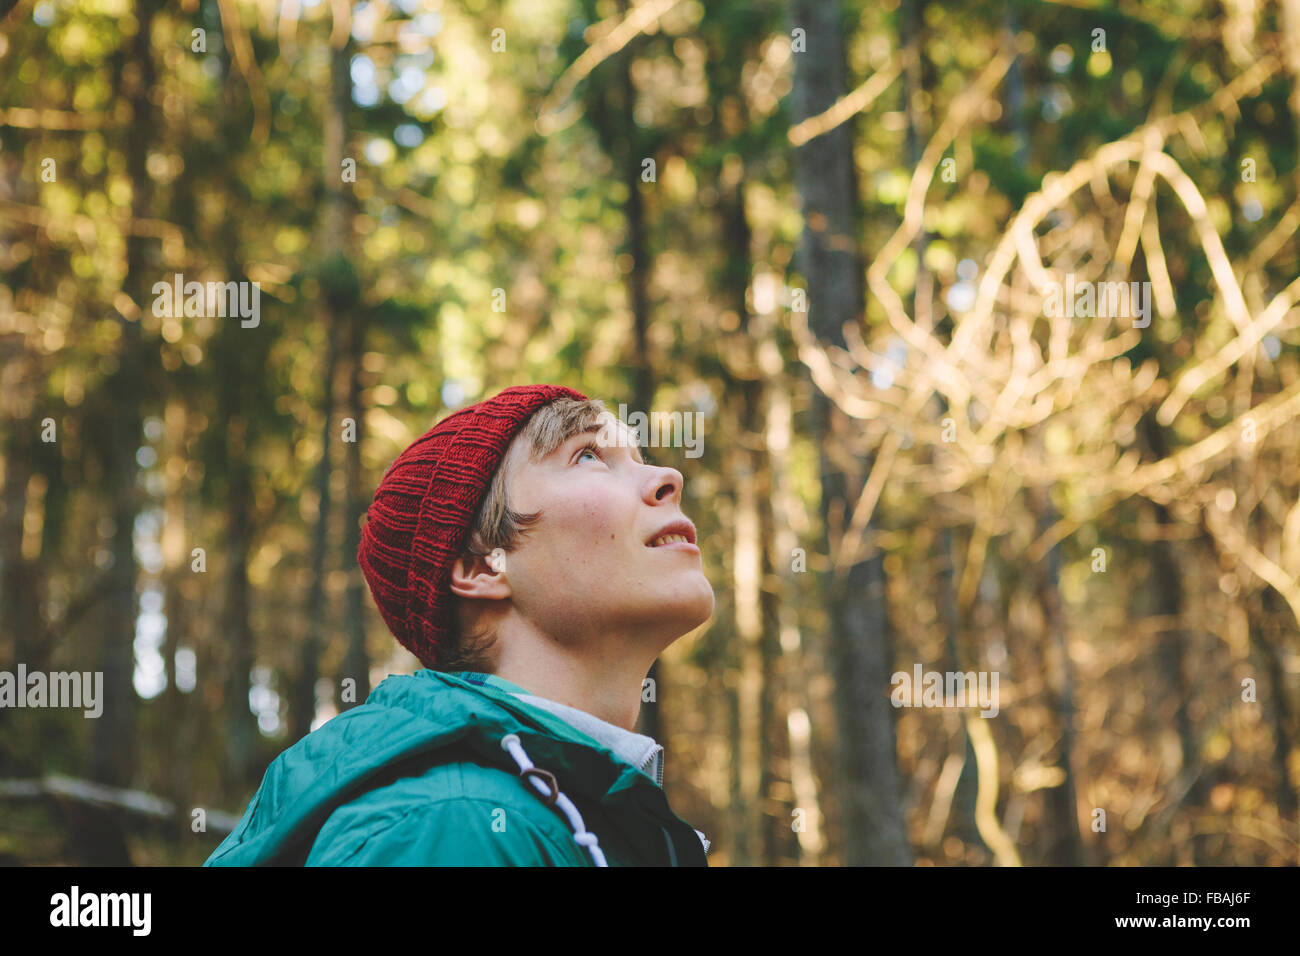 Finland, Esbo, Kvarntrask, Portrait of young man in forest, looking up - Stock Image